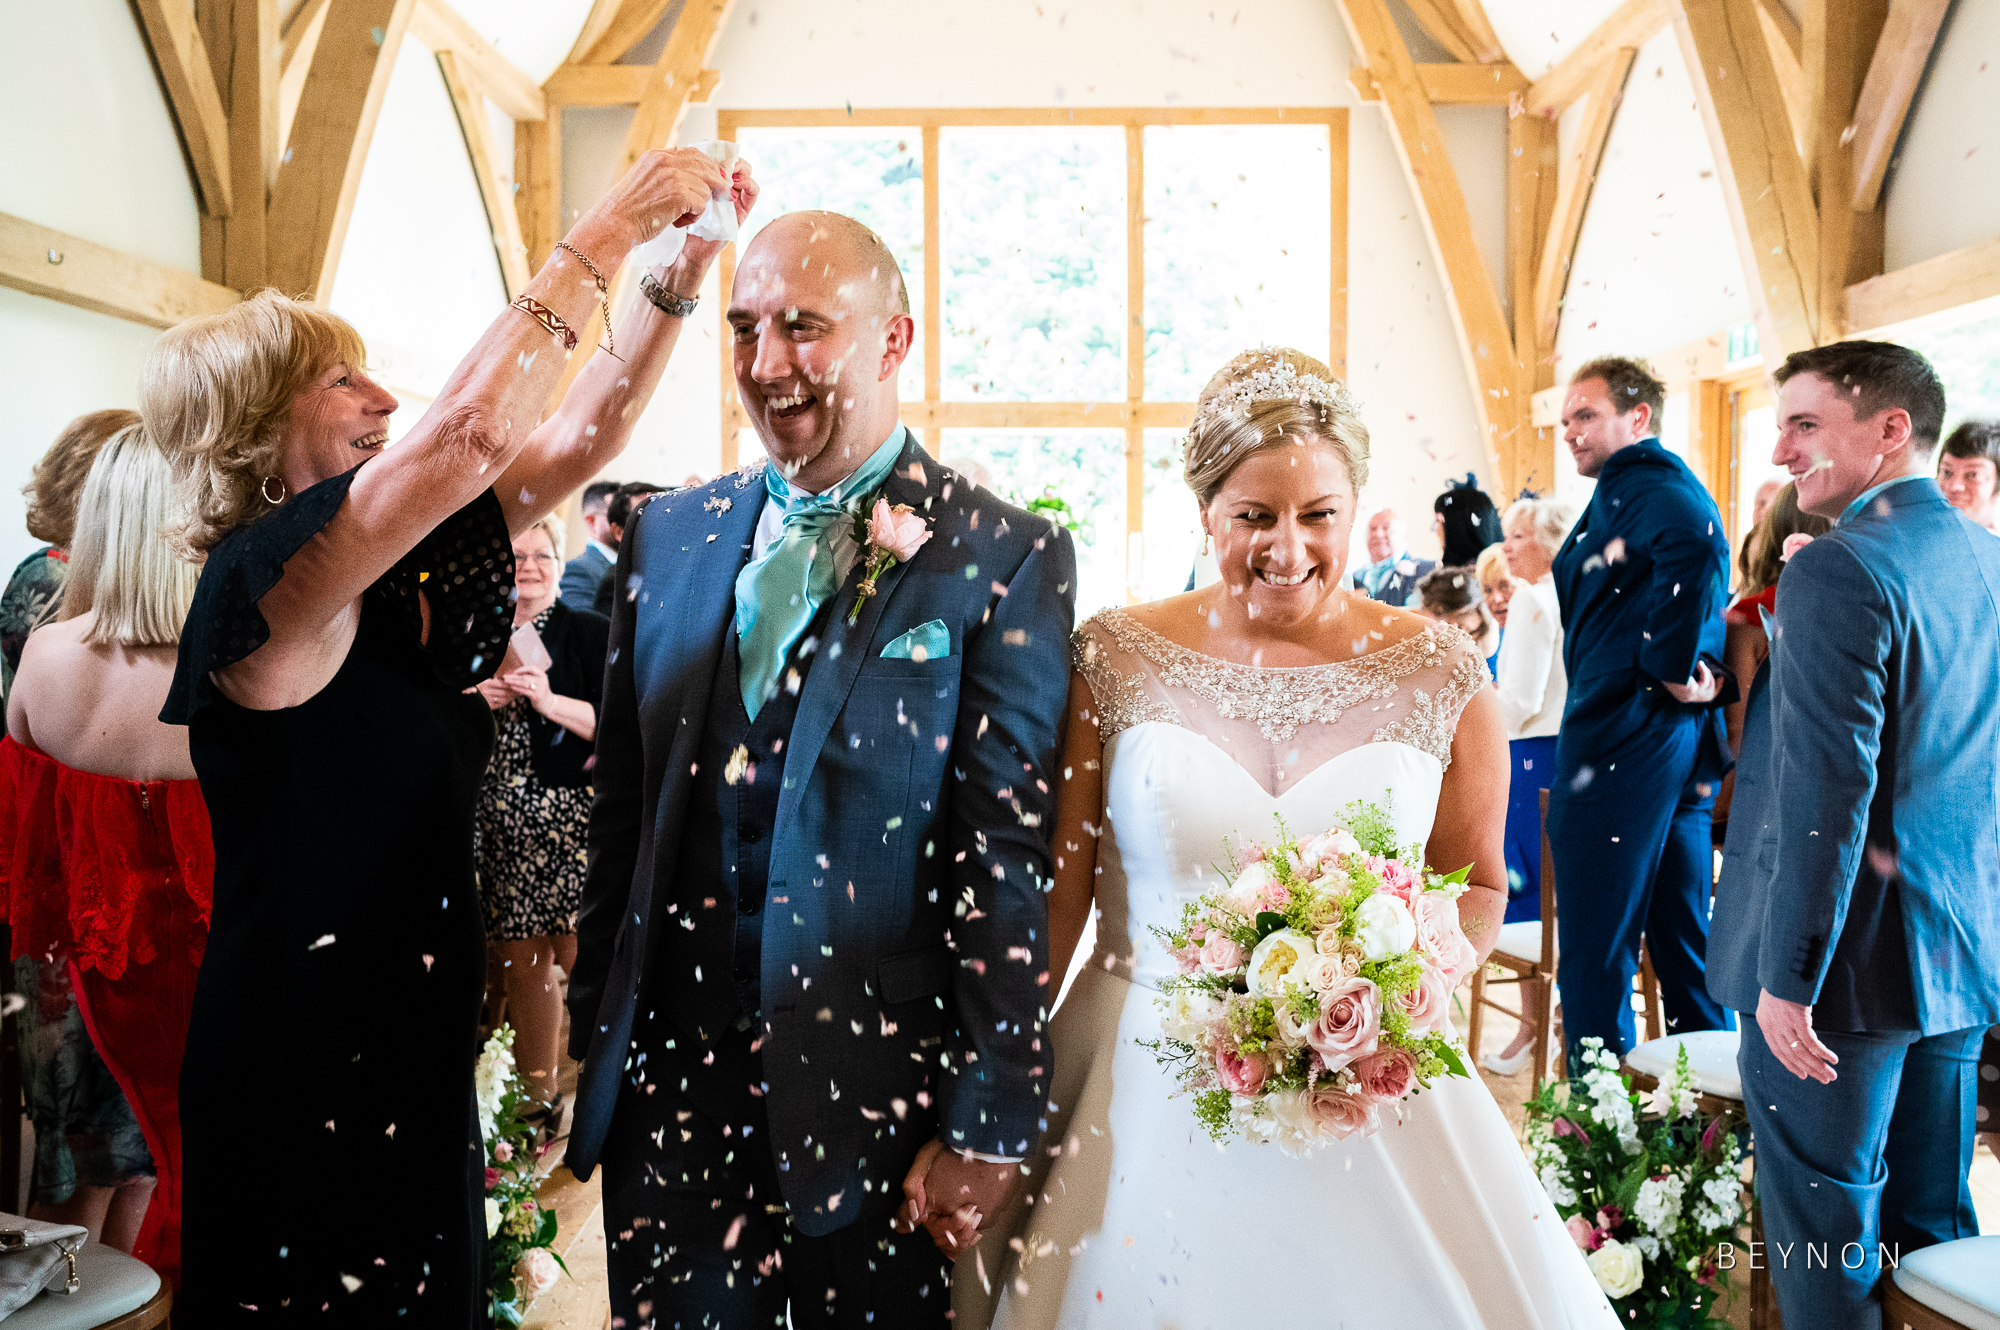 Confetti is tipped on the groom